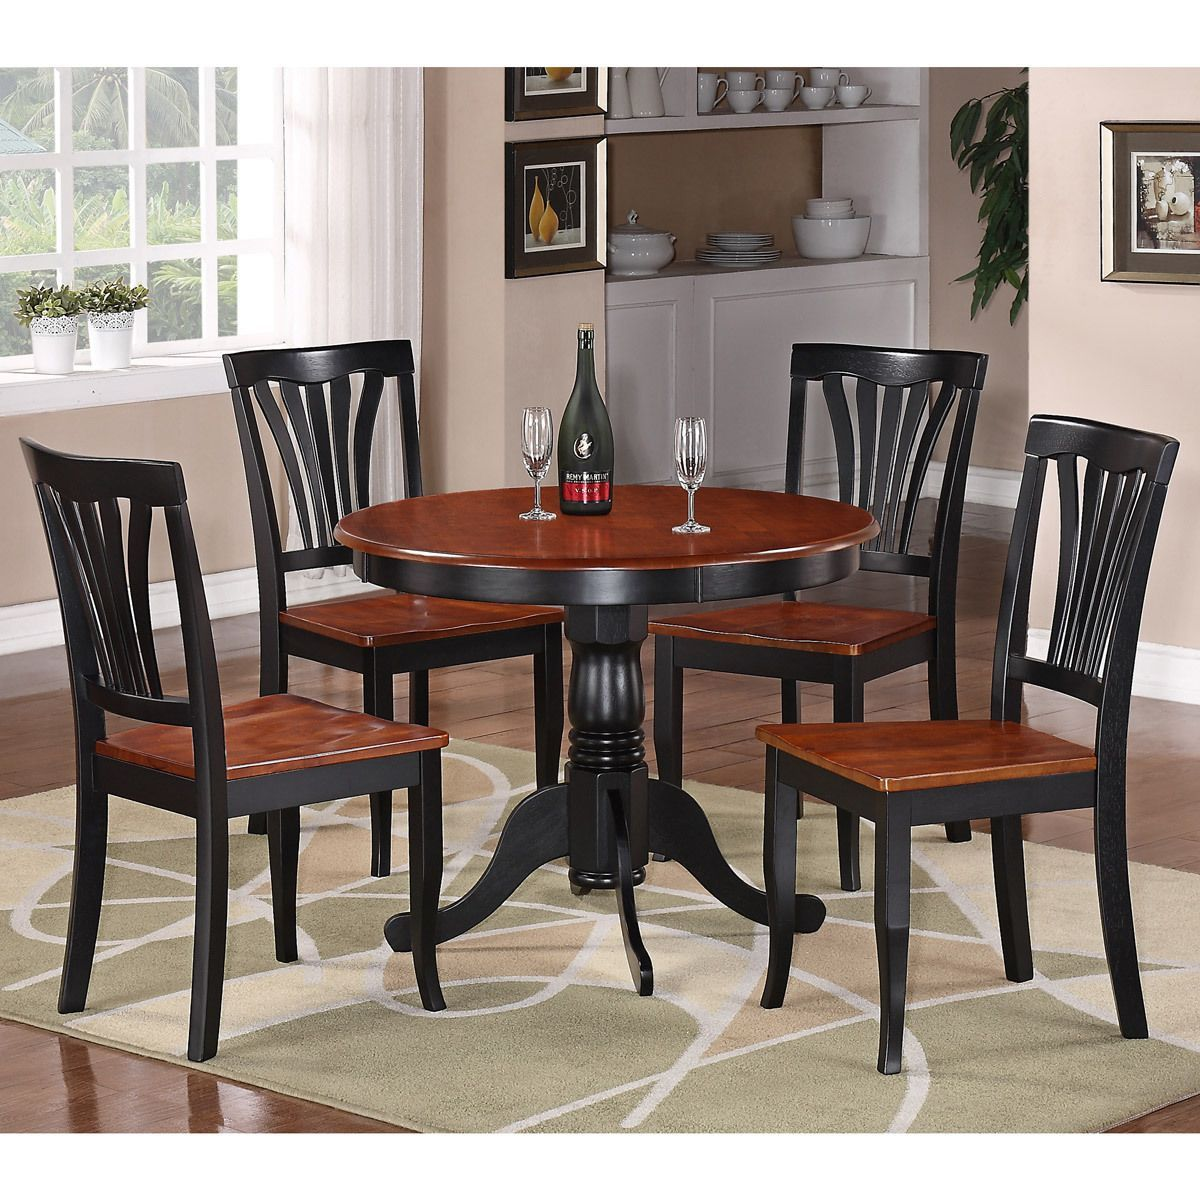 This Piece Dinette Set Includes Dining Table And Solid Wood Seat - 5 seater dining table